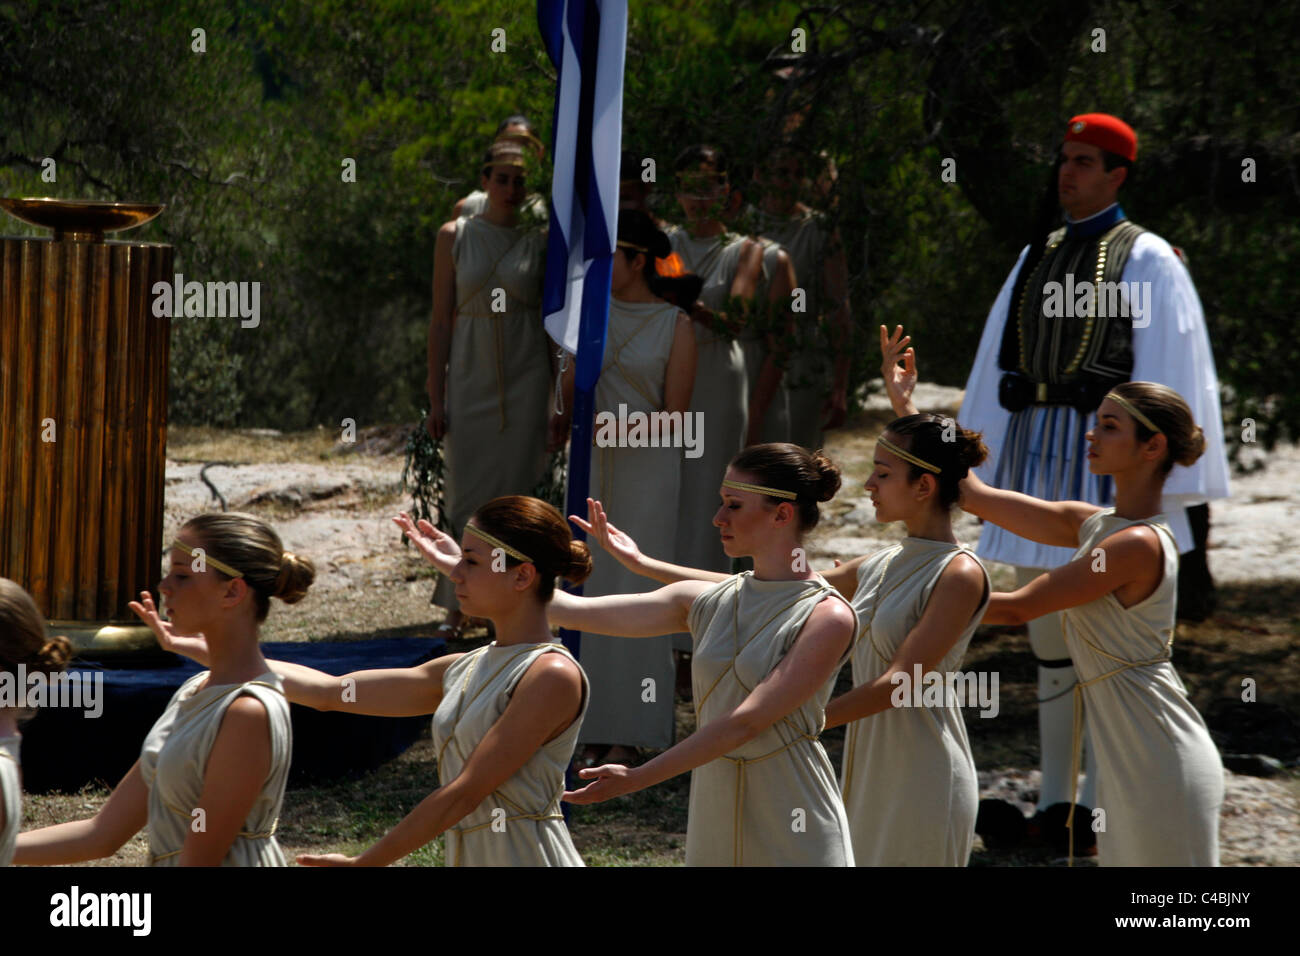 Special Olympics Torch Lighting Ceremony in Pnyx Athens Greece - Stock Image